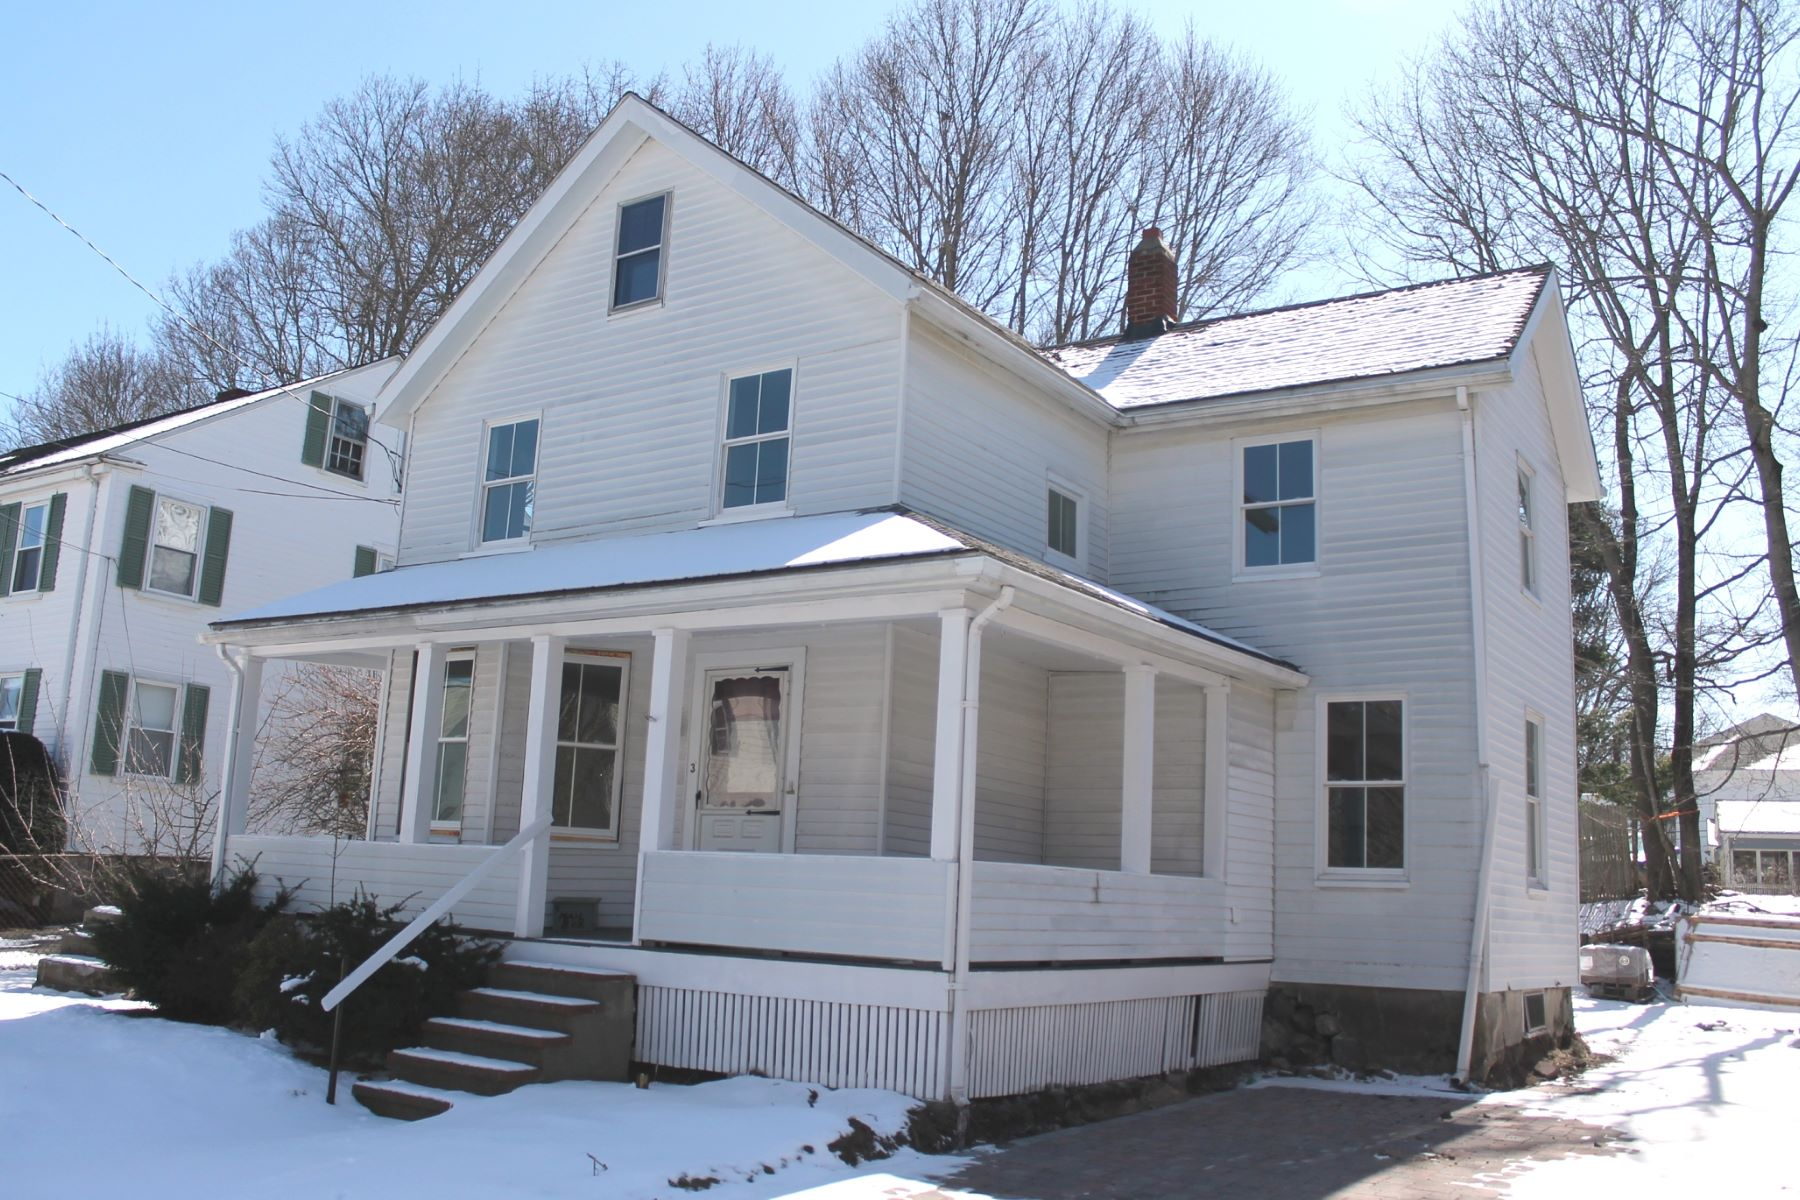 Single Family Home for Rent at Conveniently Located 3 Curve Street Lexington, 02420 United States